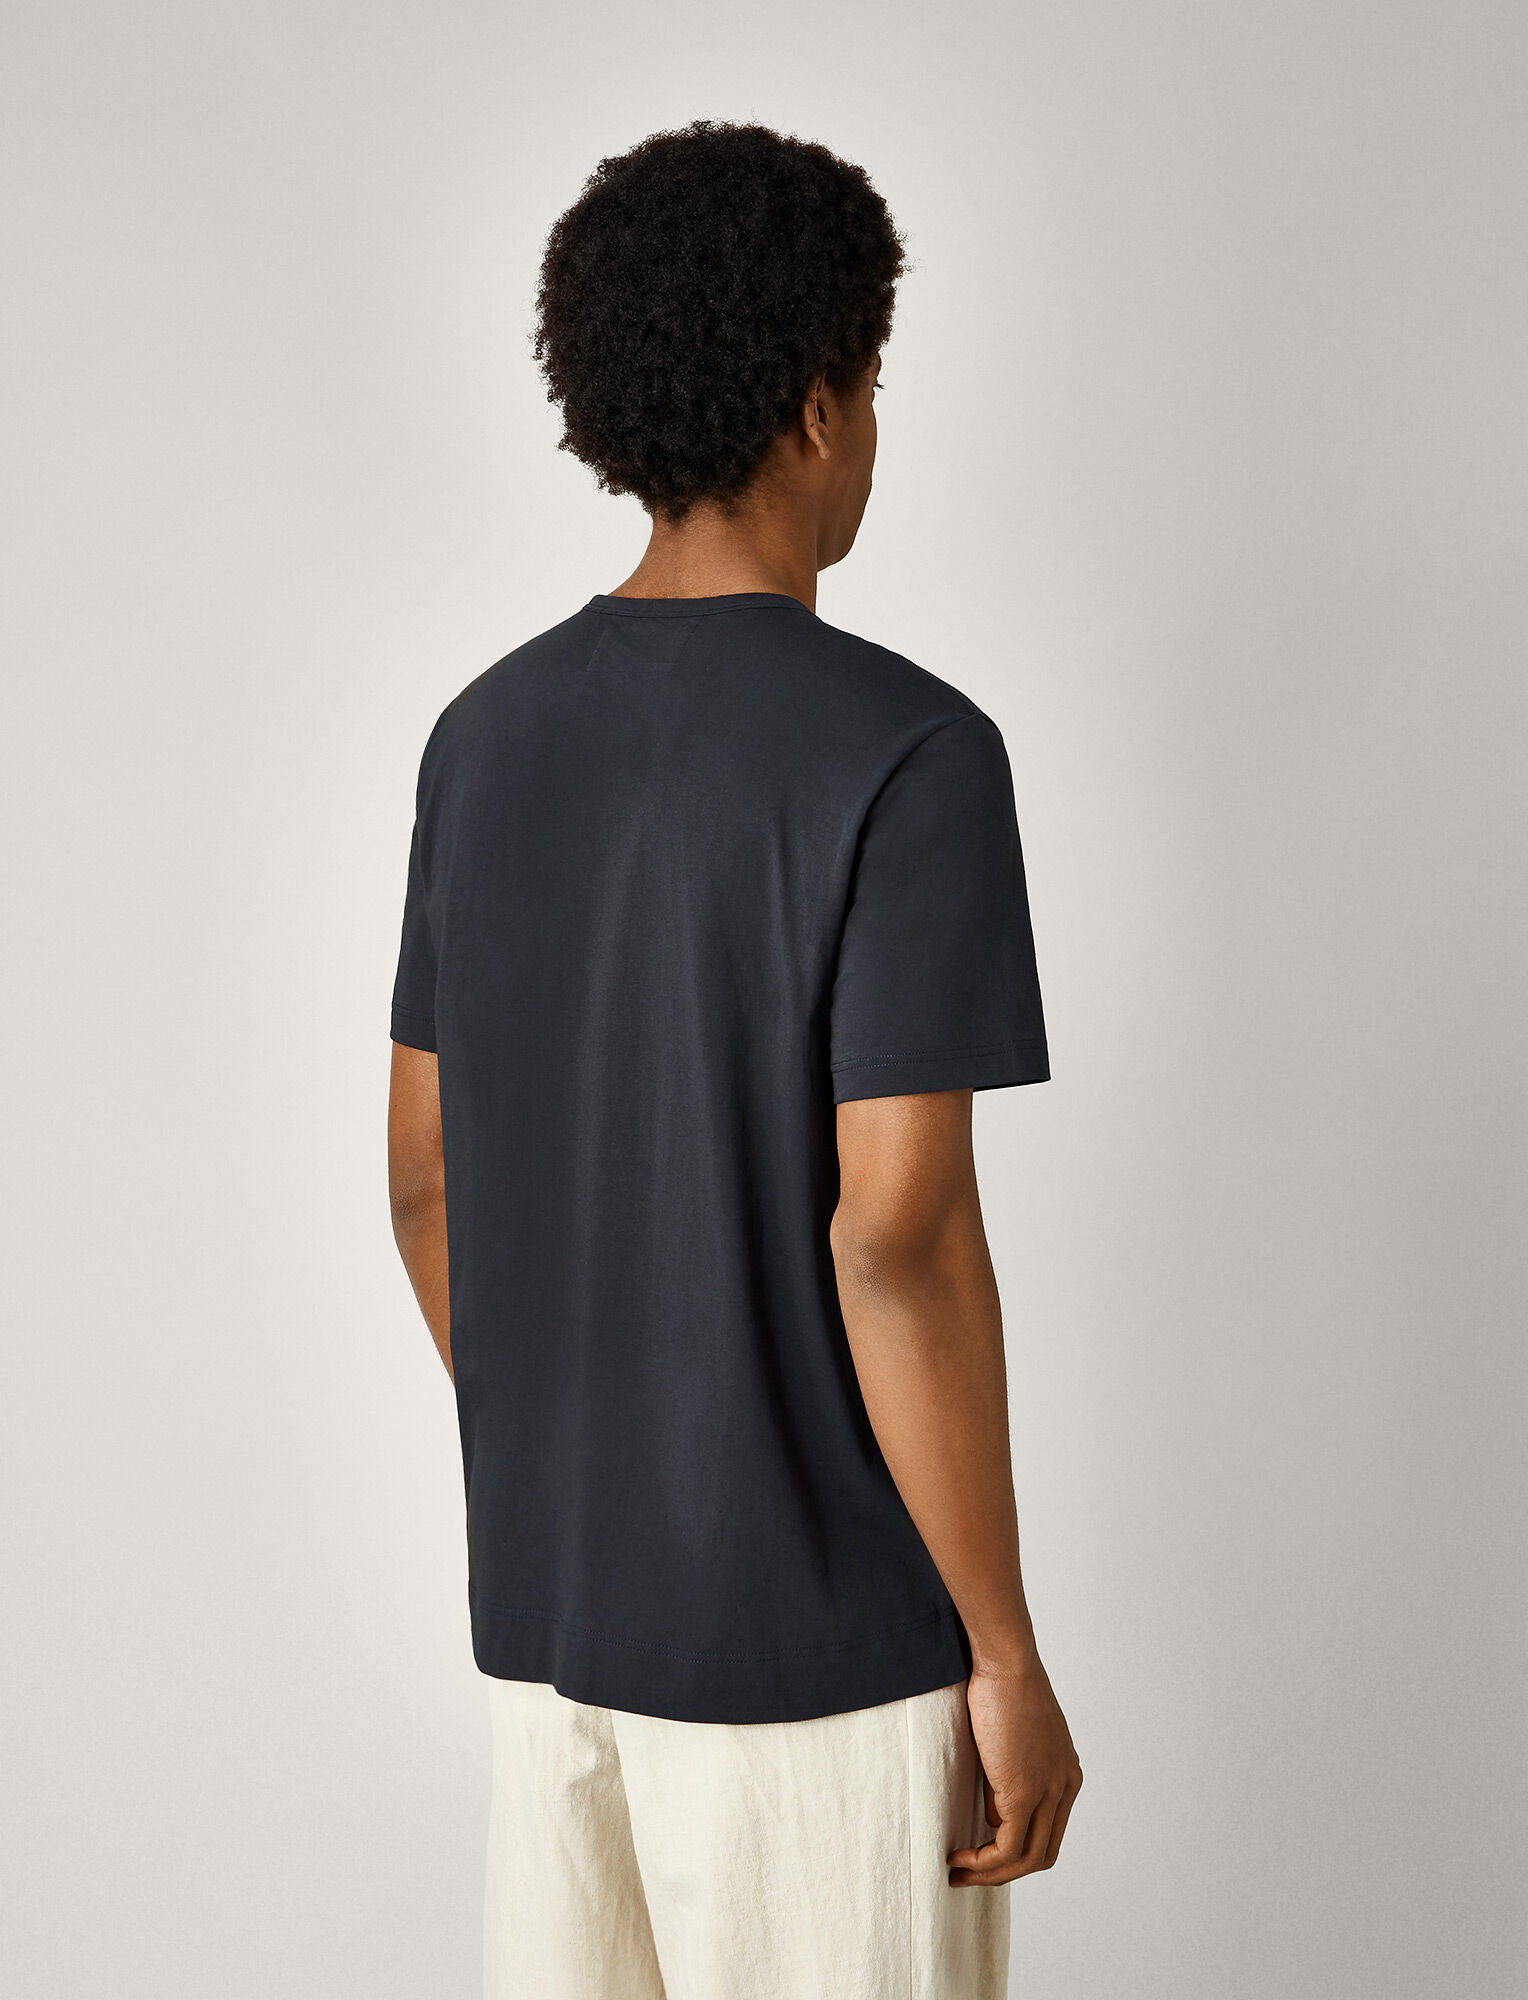 Joseph, Mercerized Jersey Tee, in NAVY